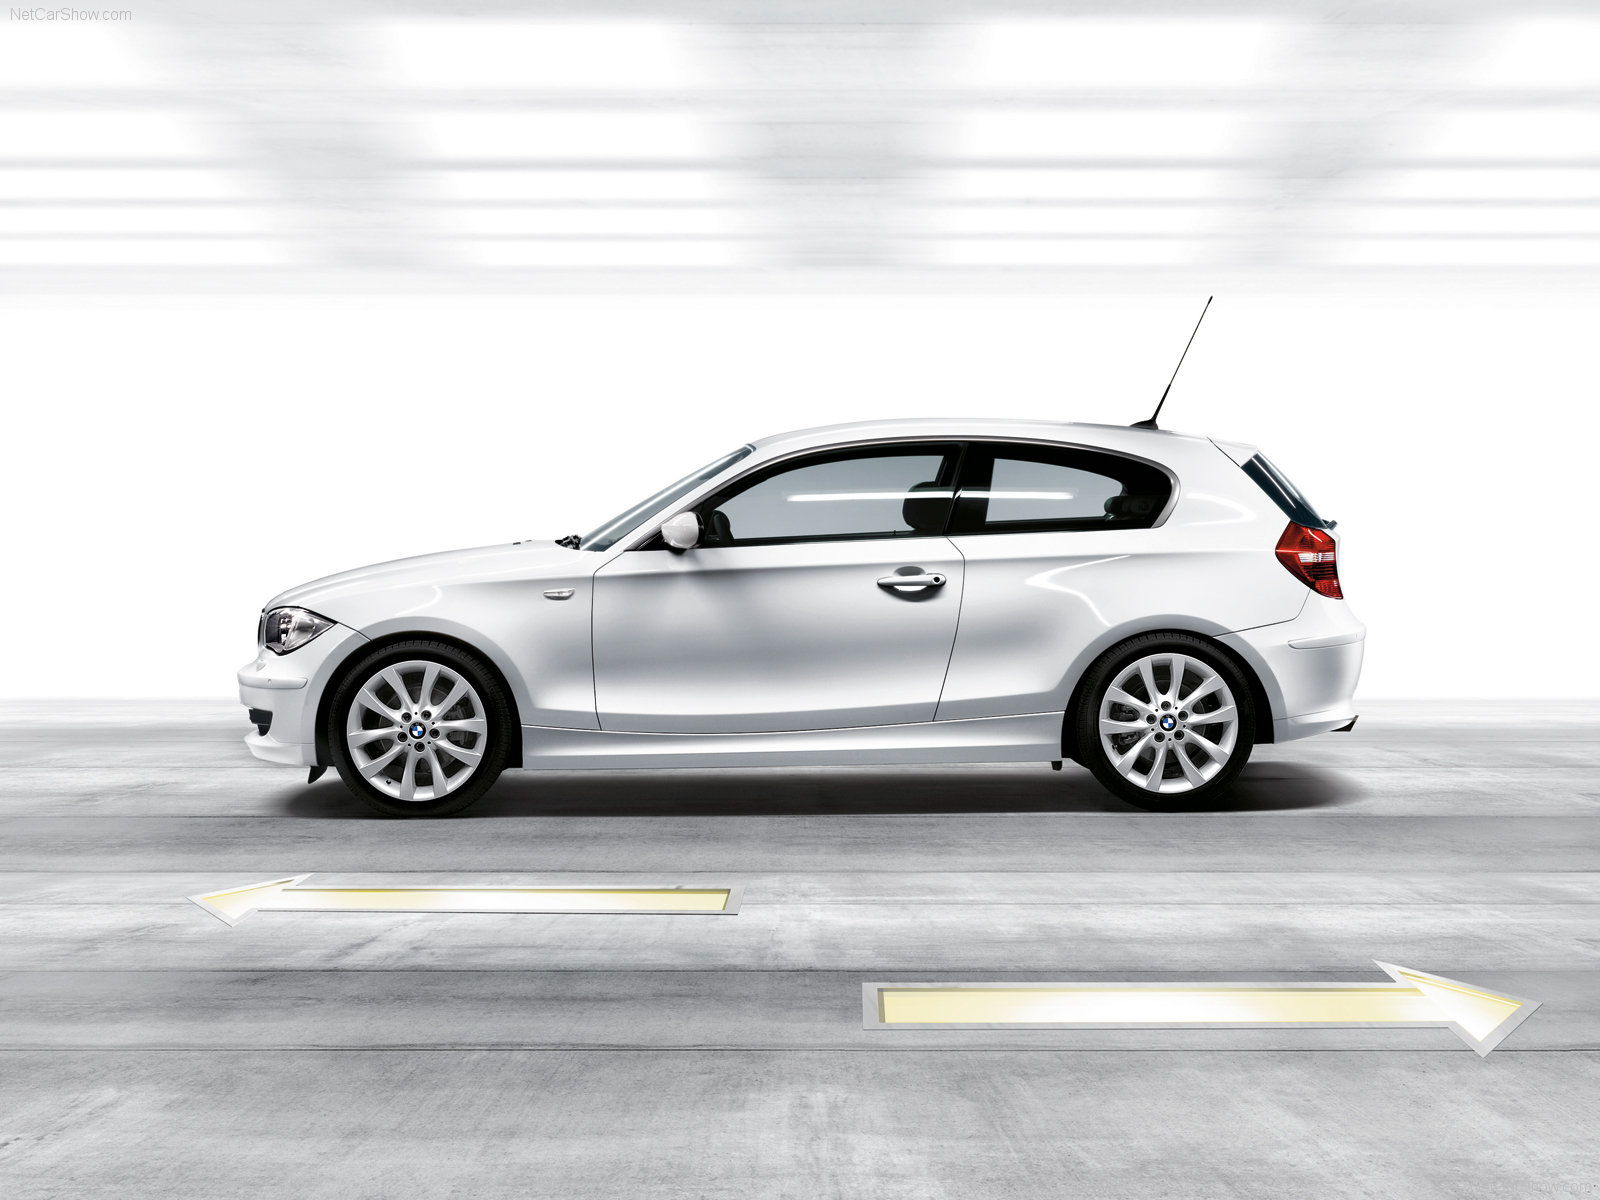 bmw 1 series 3 door e81 picture 40886 bmw photo gallery. Black Bedroom Furniture Sets. Home Design Ideas